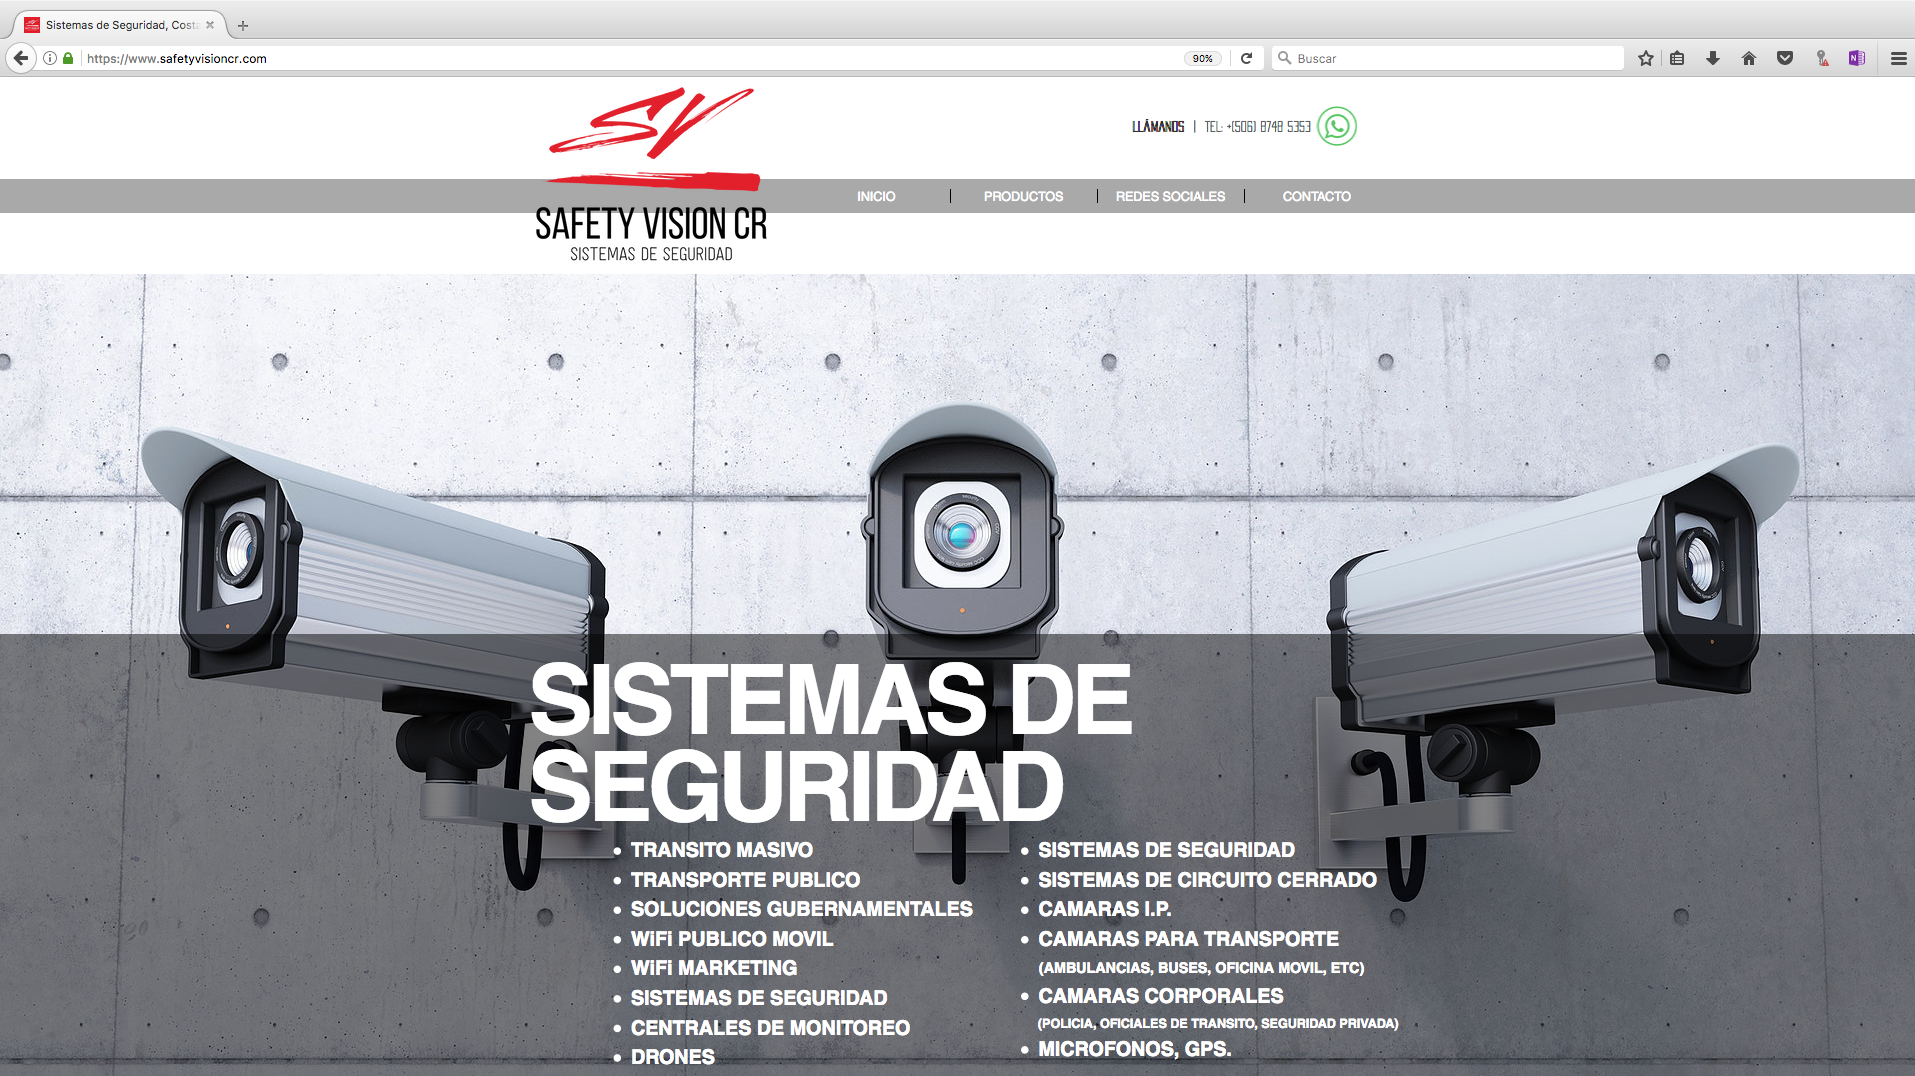 Safety Vision CR